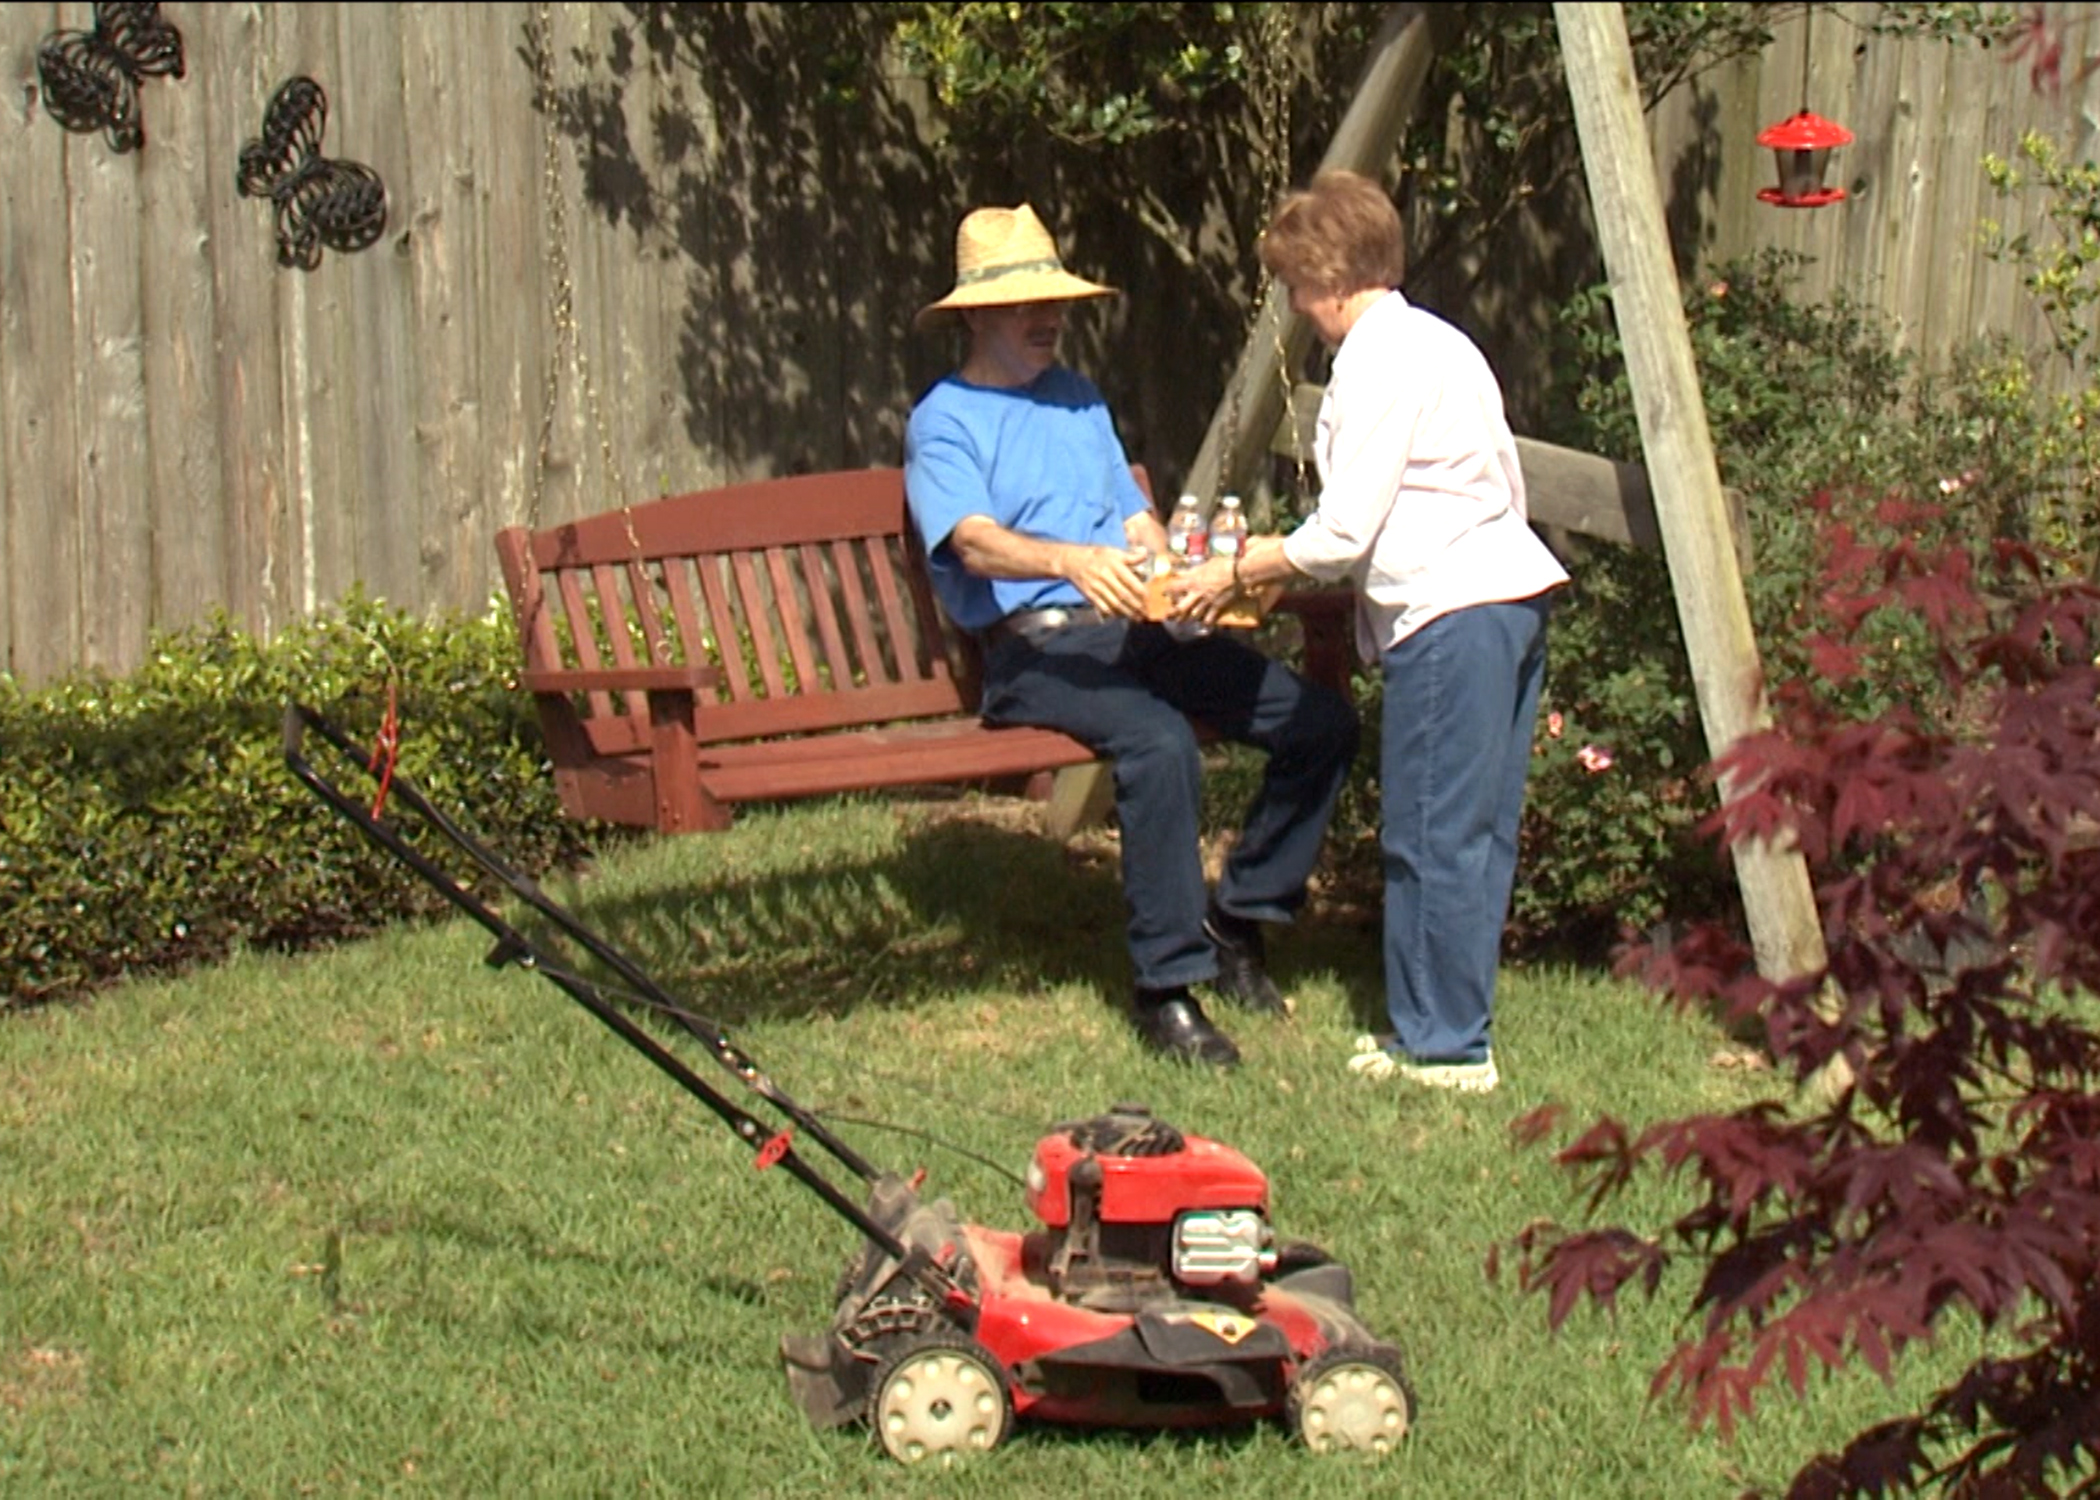 Hot weather tips keep gardeners safe at work | Mississippi State ...